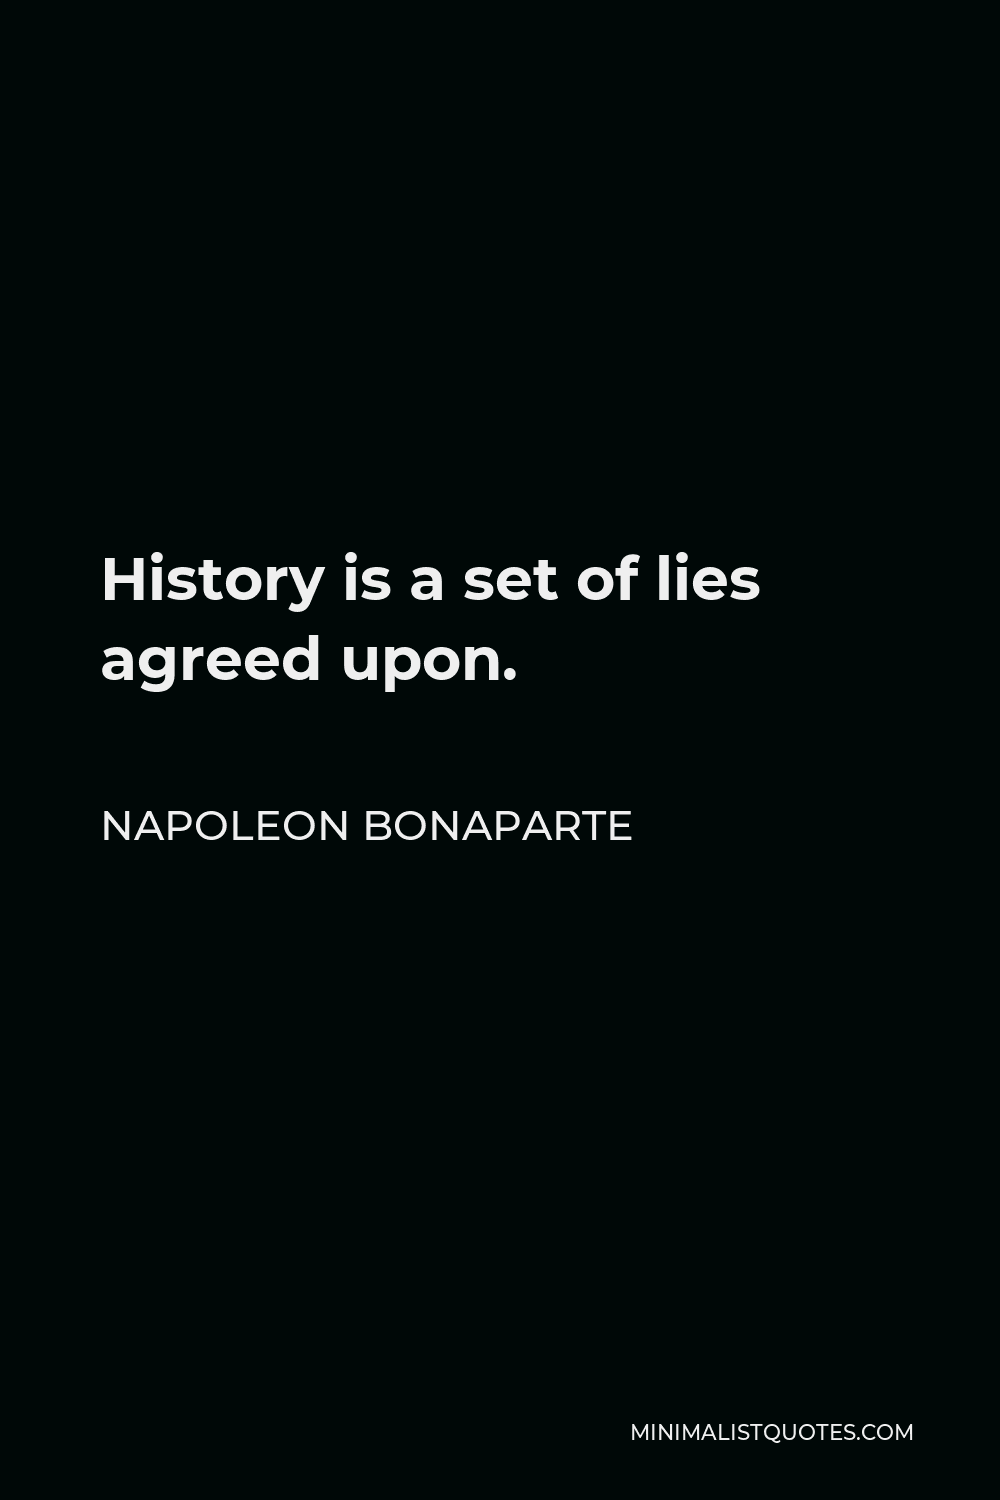 Napoleon Bonaparte Quote - History is a set of lies agreed upon.